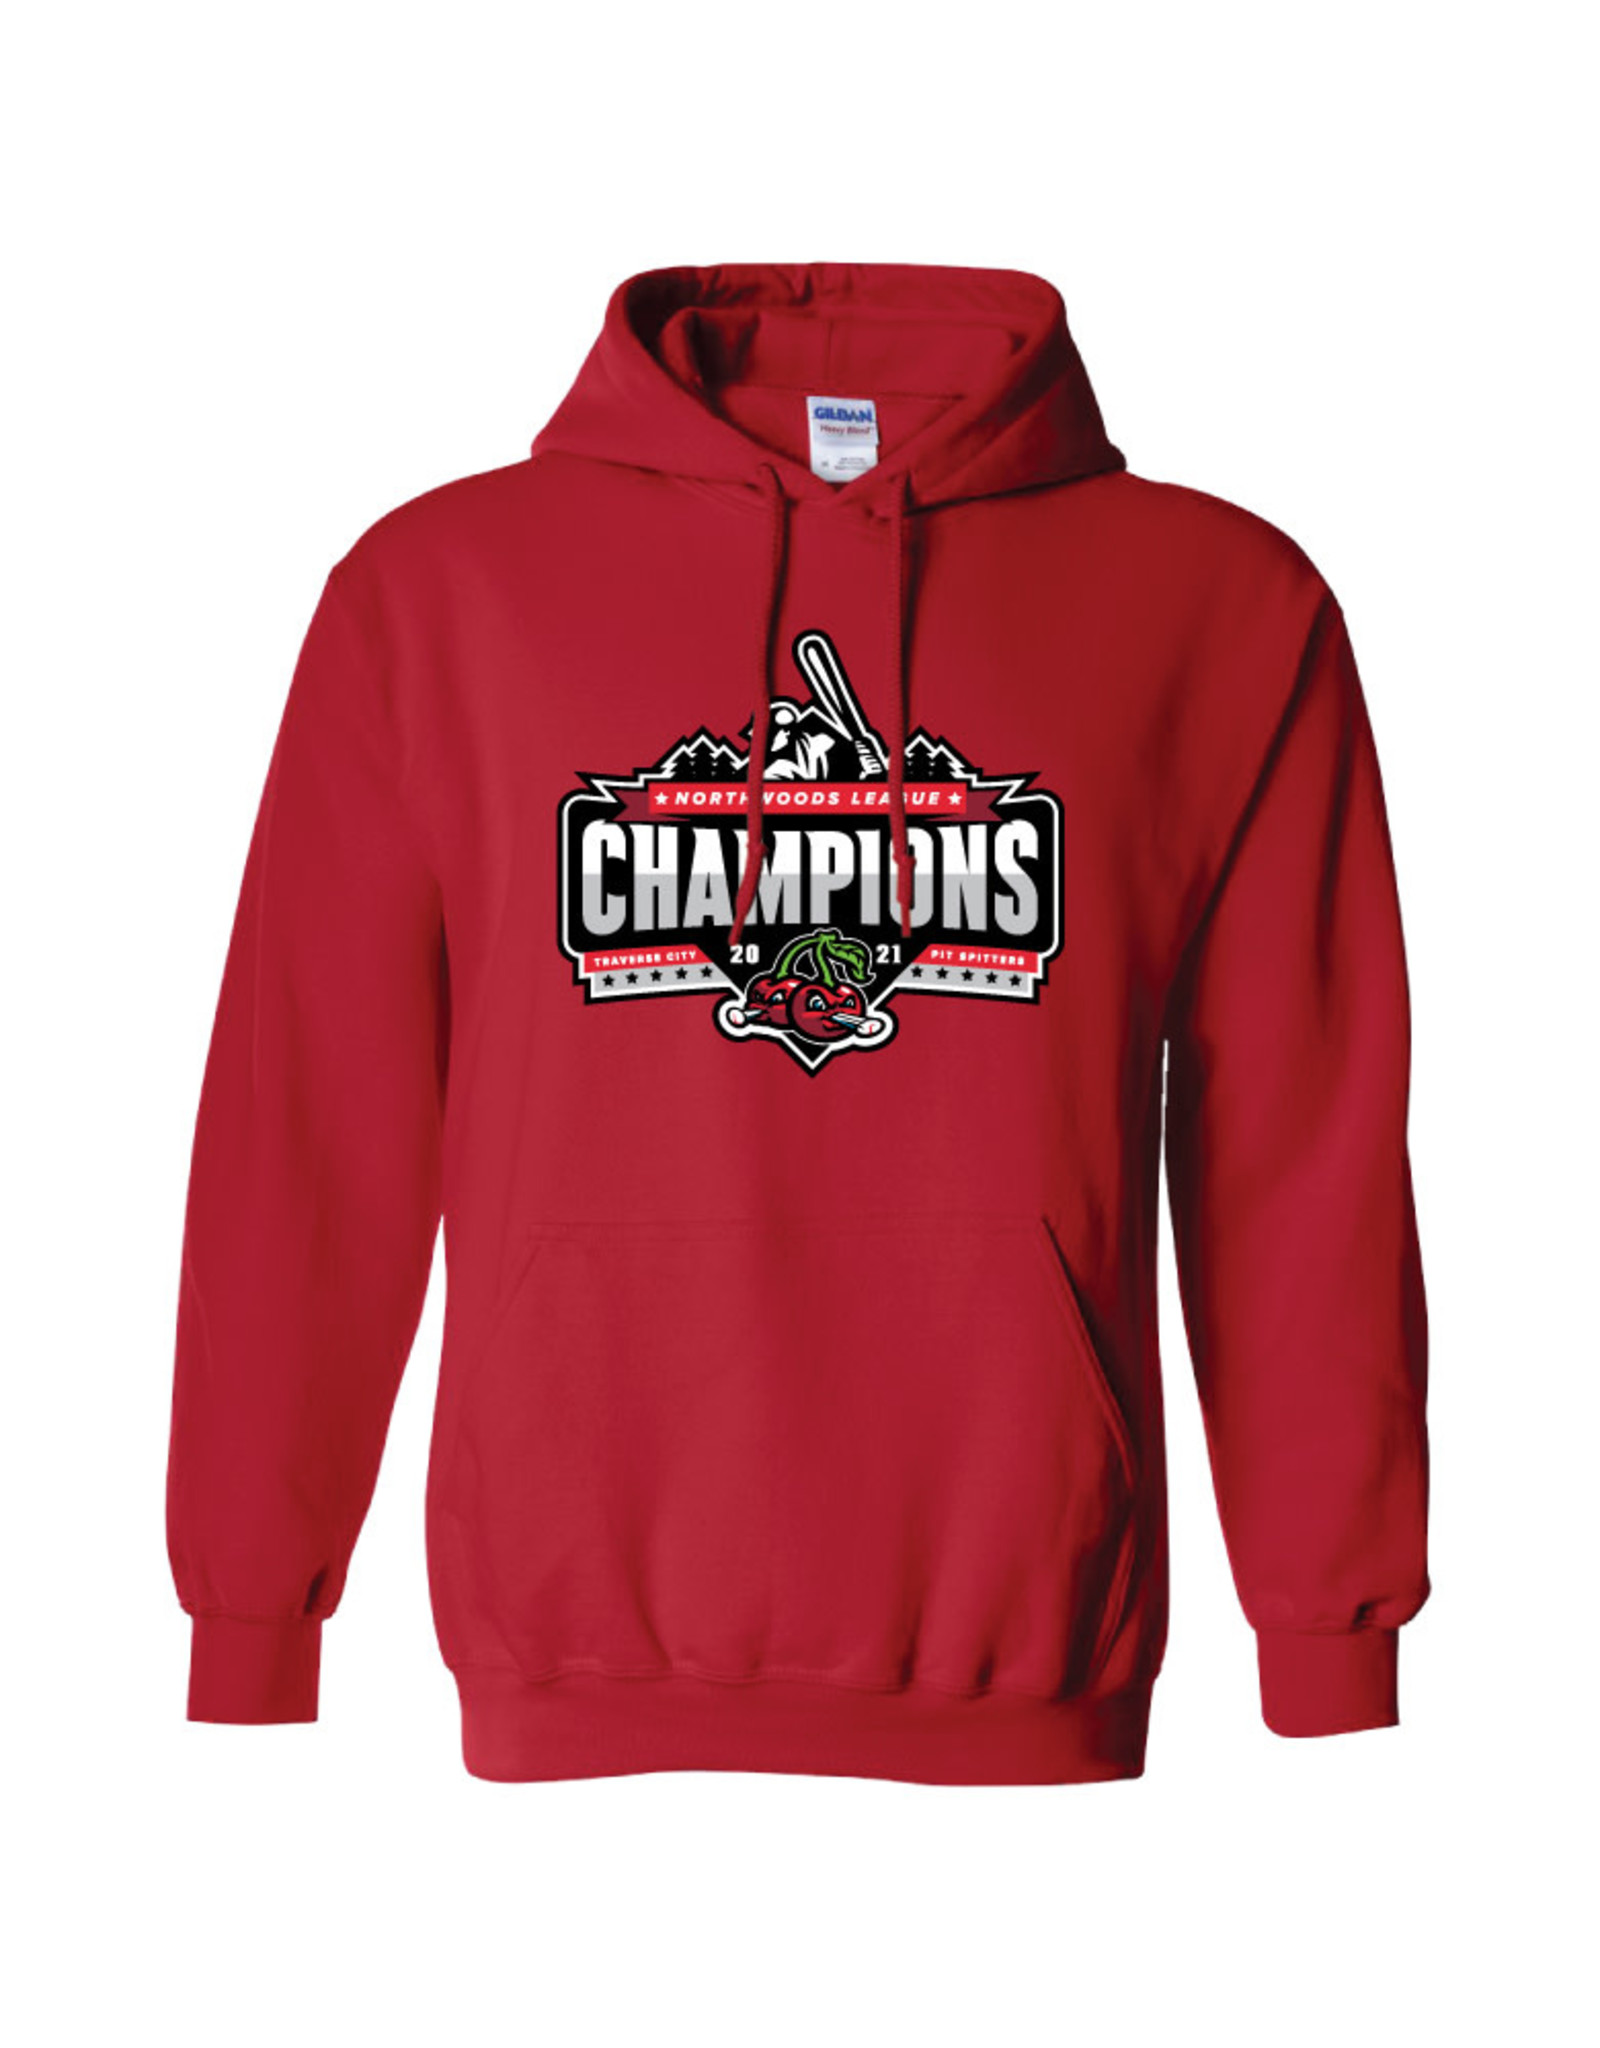 3021 Champions Red Hoodie